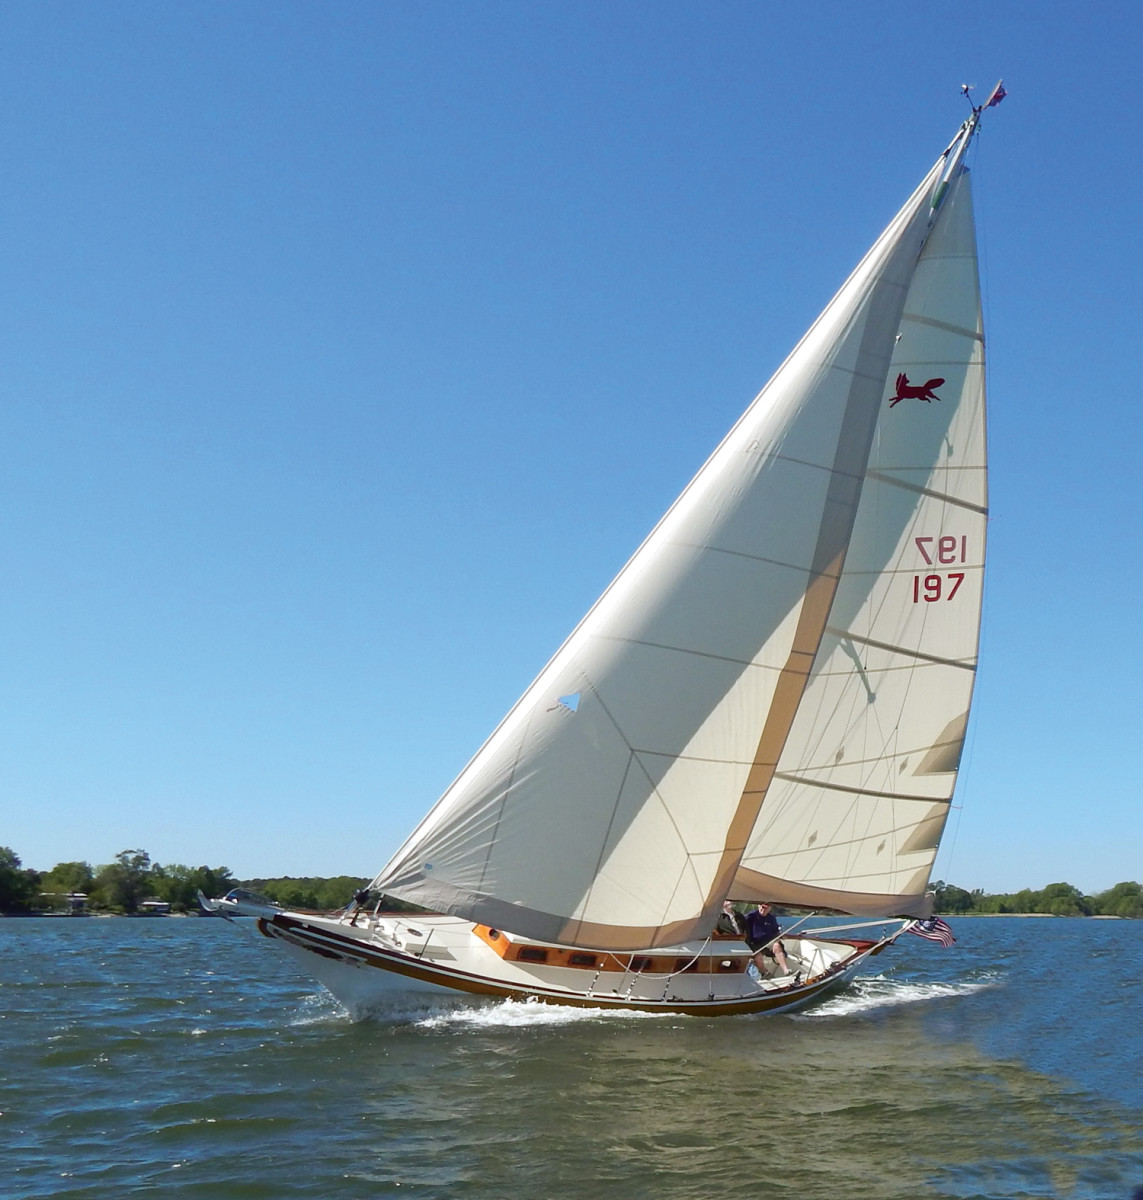 Vixen, a 39-foot, Ralph Wiley-designed Tancook Whaler sloop from 1955, sails for the first time after being restored at Cutts & Case Shipyard.